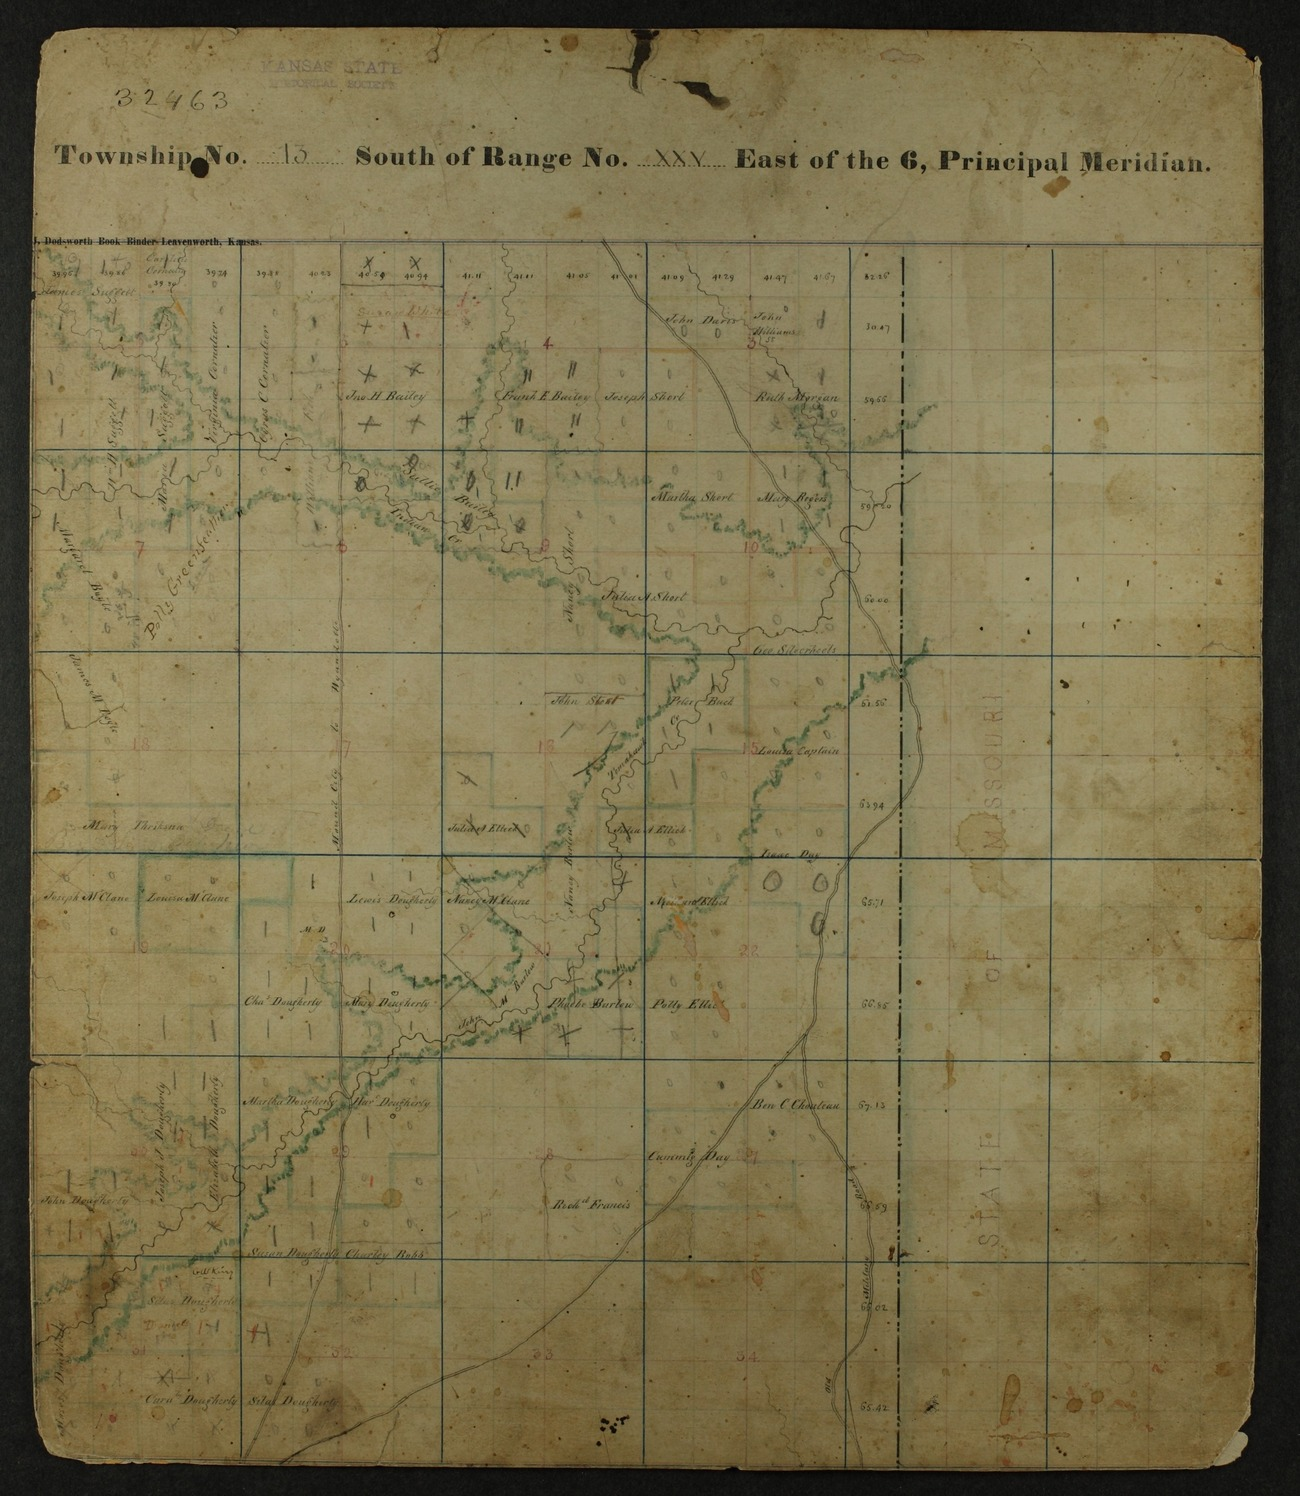 Shawnee Indian reservation plat maps of 1854 - 27